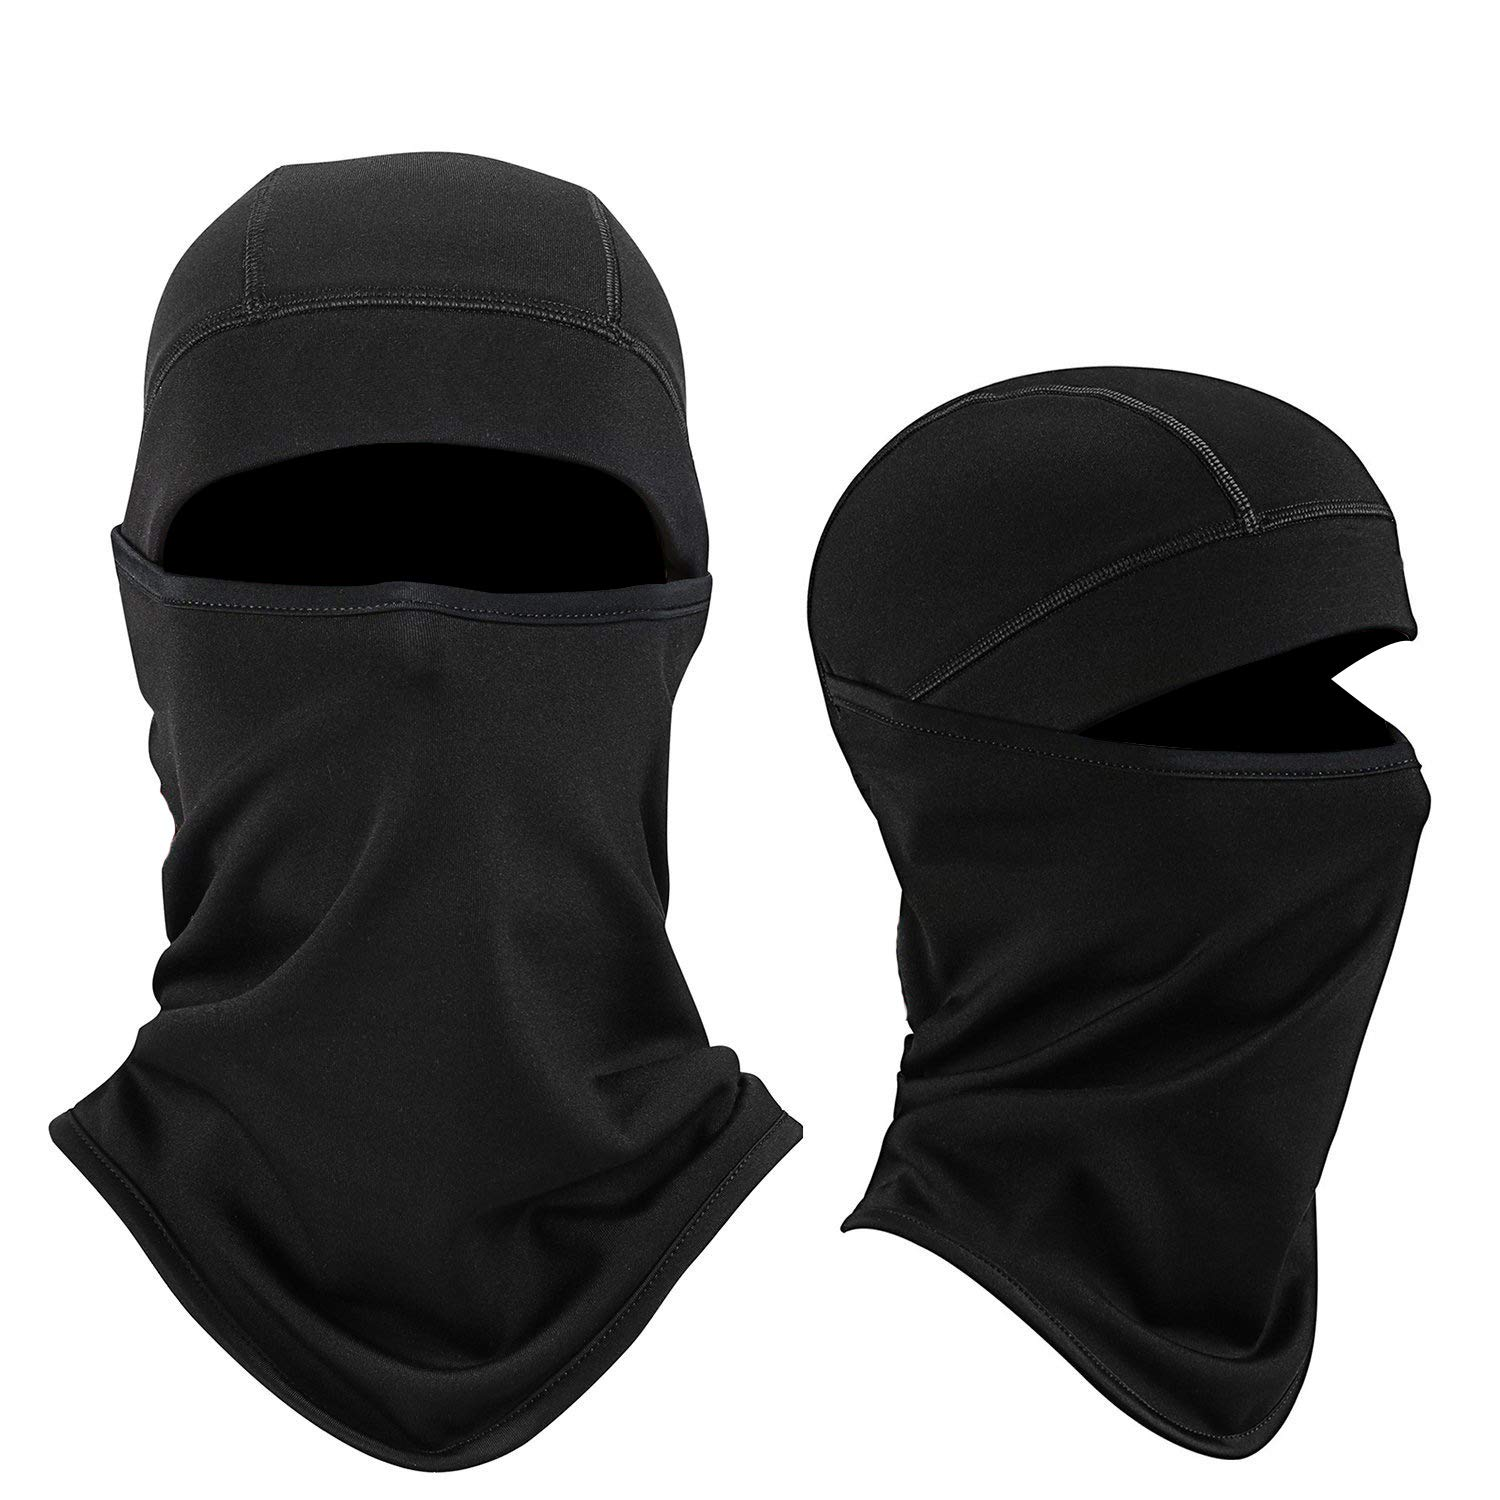 Apparel Accessories Outdoor Sports Neck Breathable Polar Hoods Hat Winter Ski Cap Ear Windbreaker Warm Mask Bike Scarf Cheapest Price From Our Site